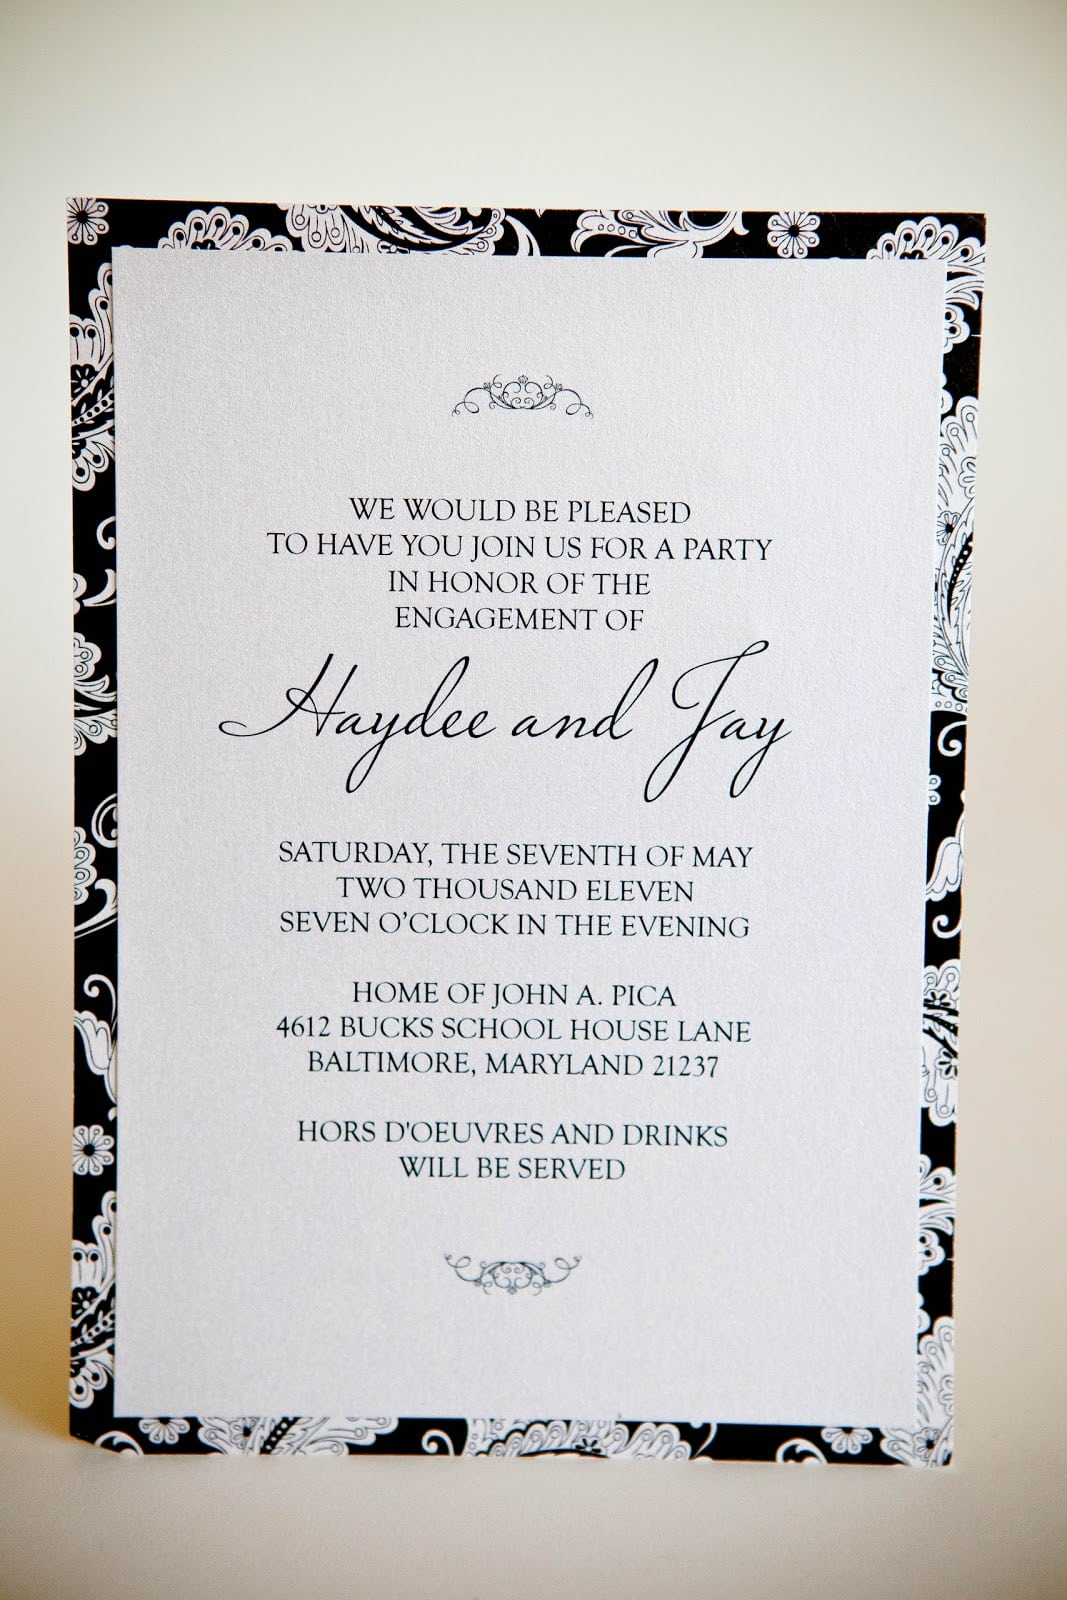 Engagement Party • Custom Invitations Baltimore Kindly Rsvp